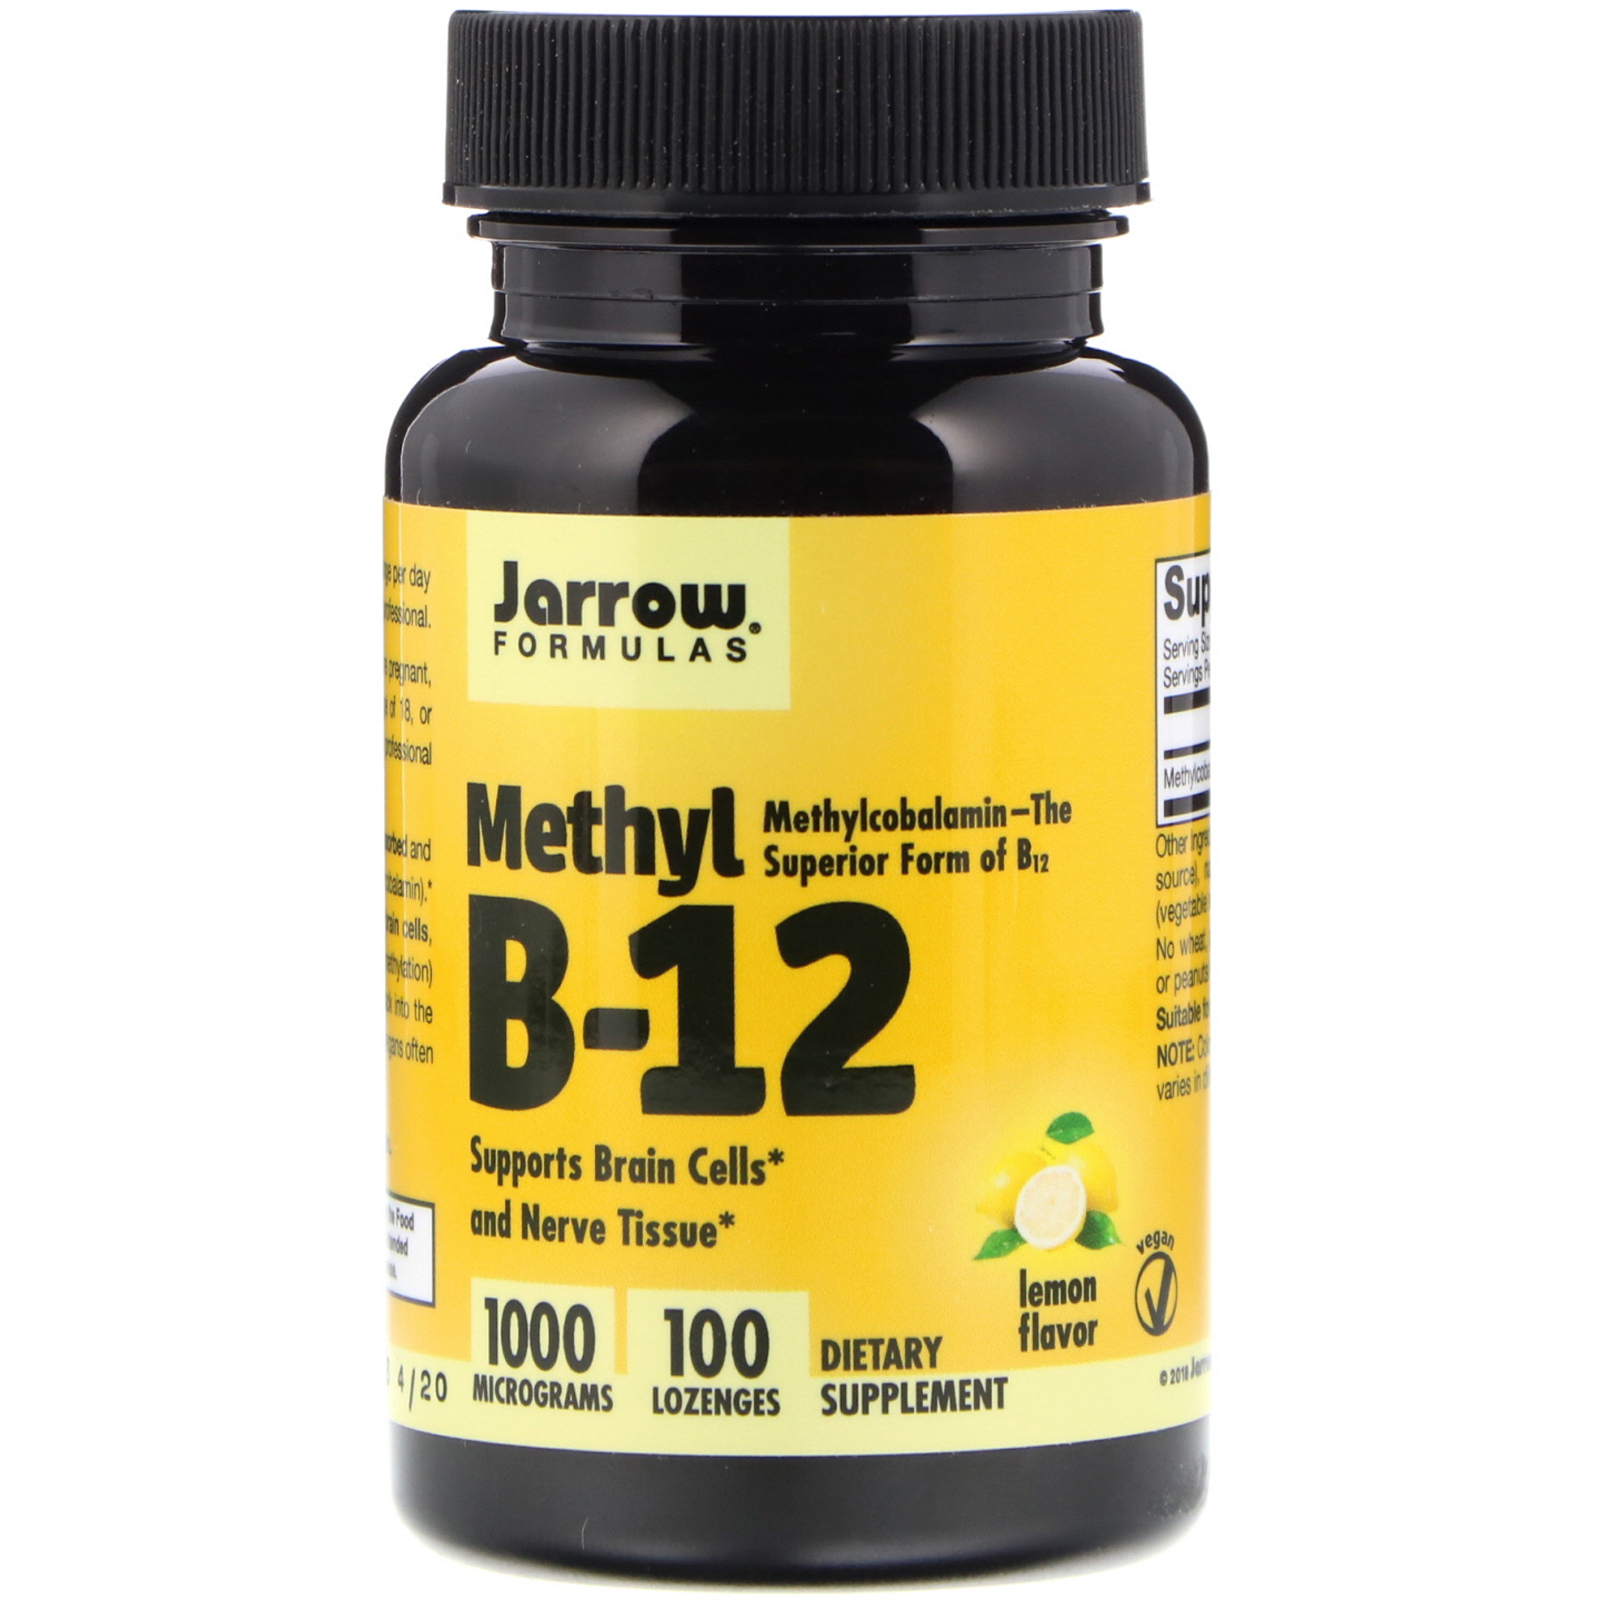 Methyl B-12 Vitamin Supplement